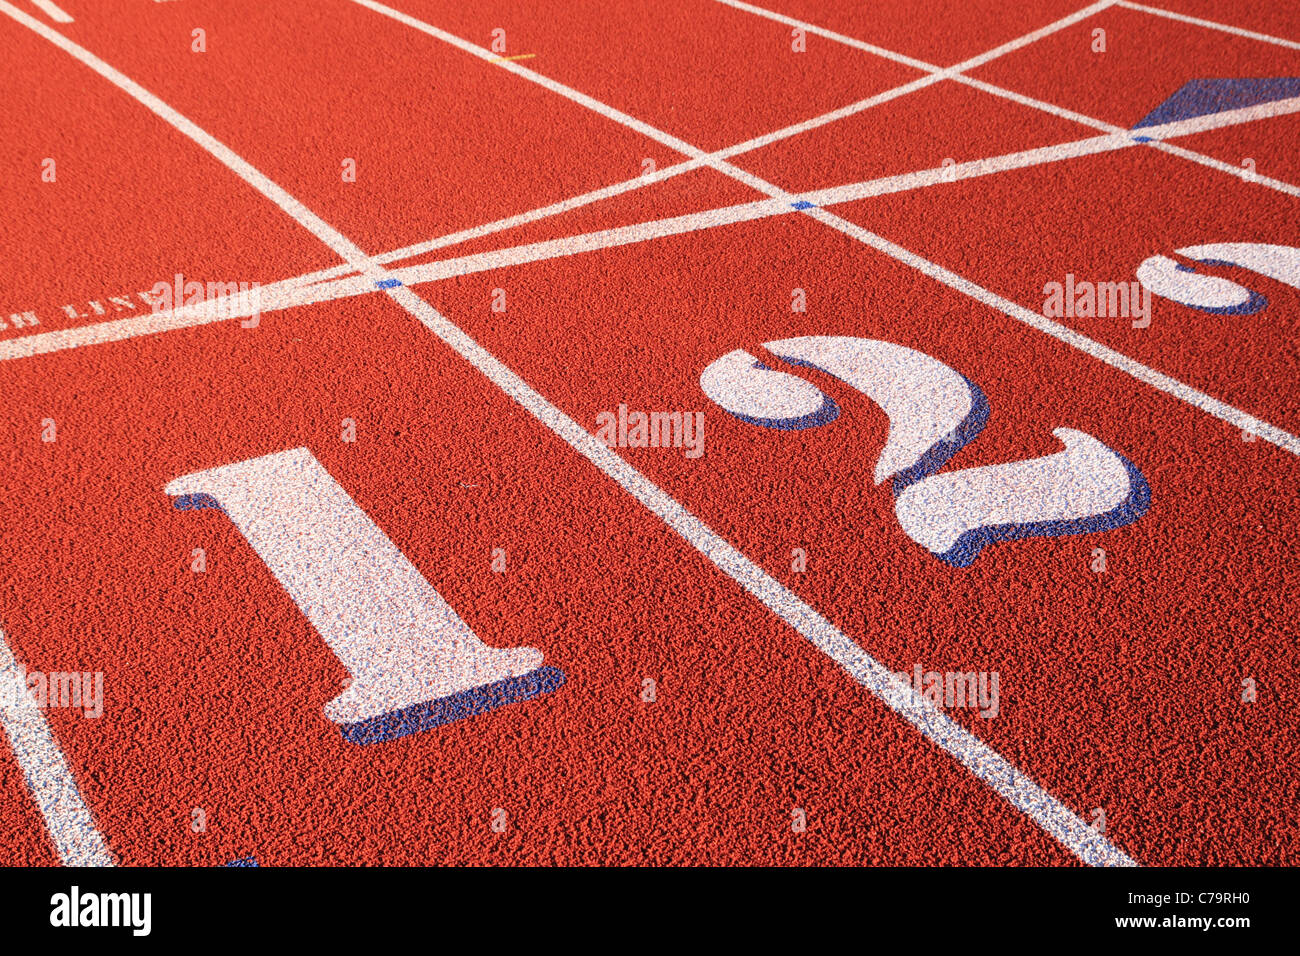 lanes one and two marked on a red rubber athletic track - Stock Image